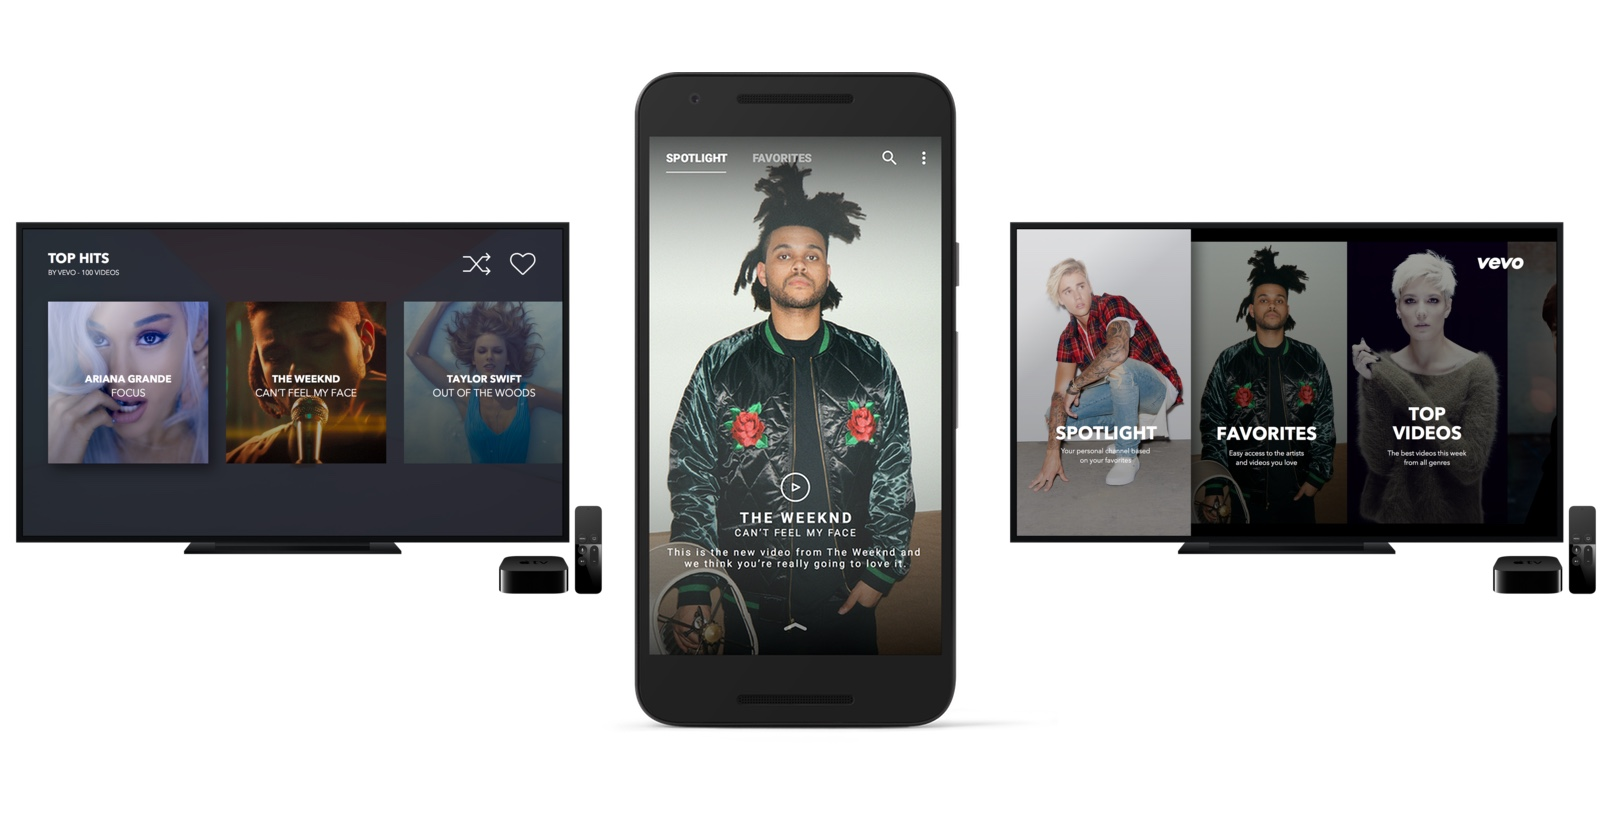 Vevo is now more personalized thanks to Twitter and Spotify